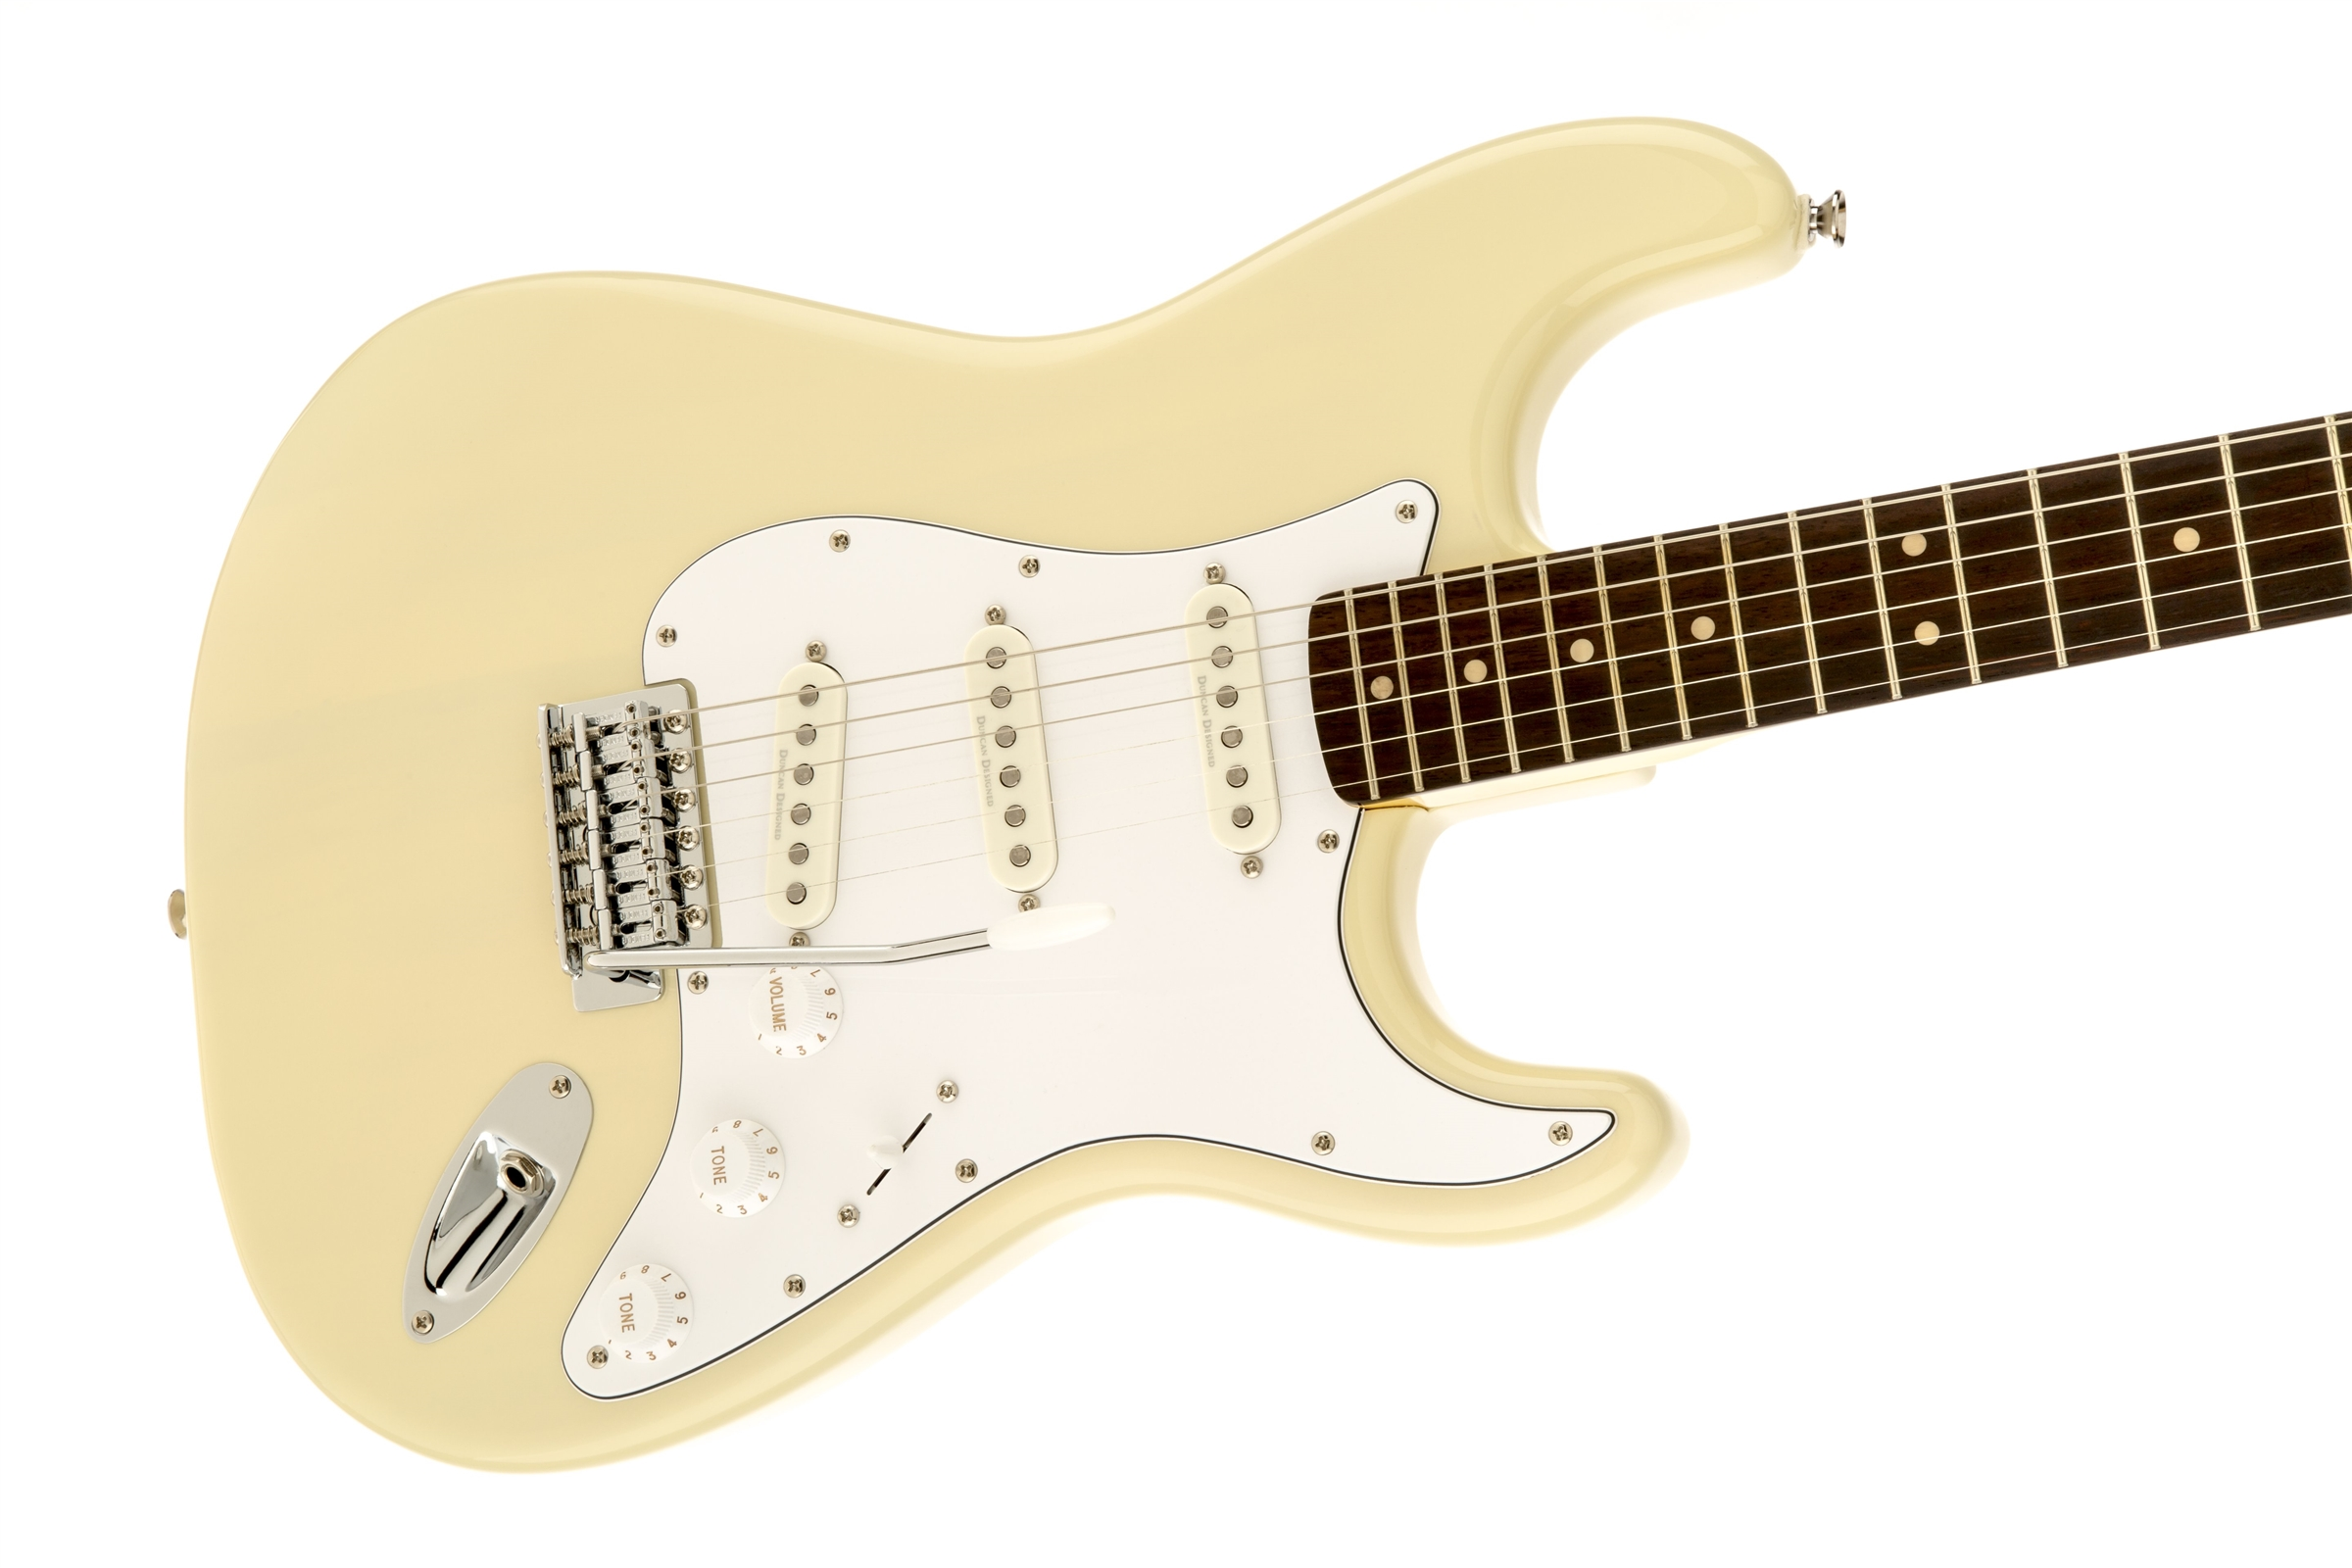 squier vintage modified stratocaster rosewood fingerboard vintage blonde squier electric. Black Bedroom Furniture Sets. Home Design Ideas